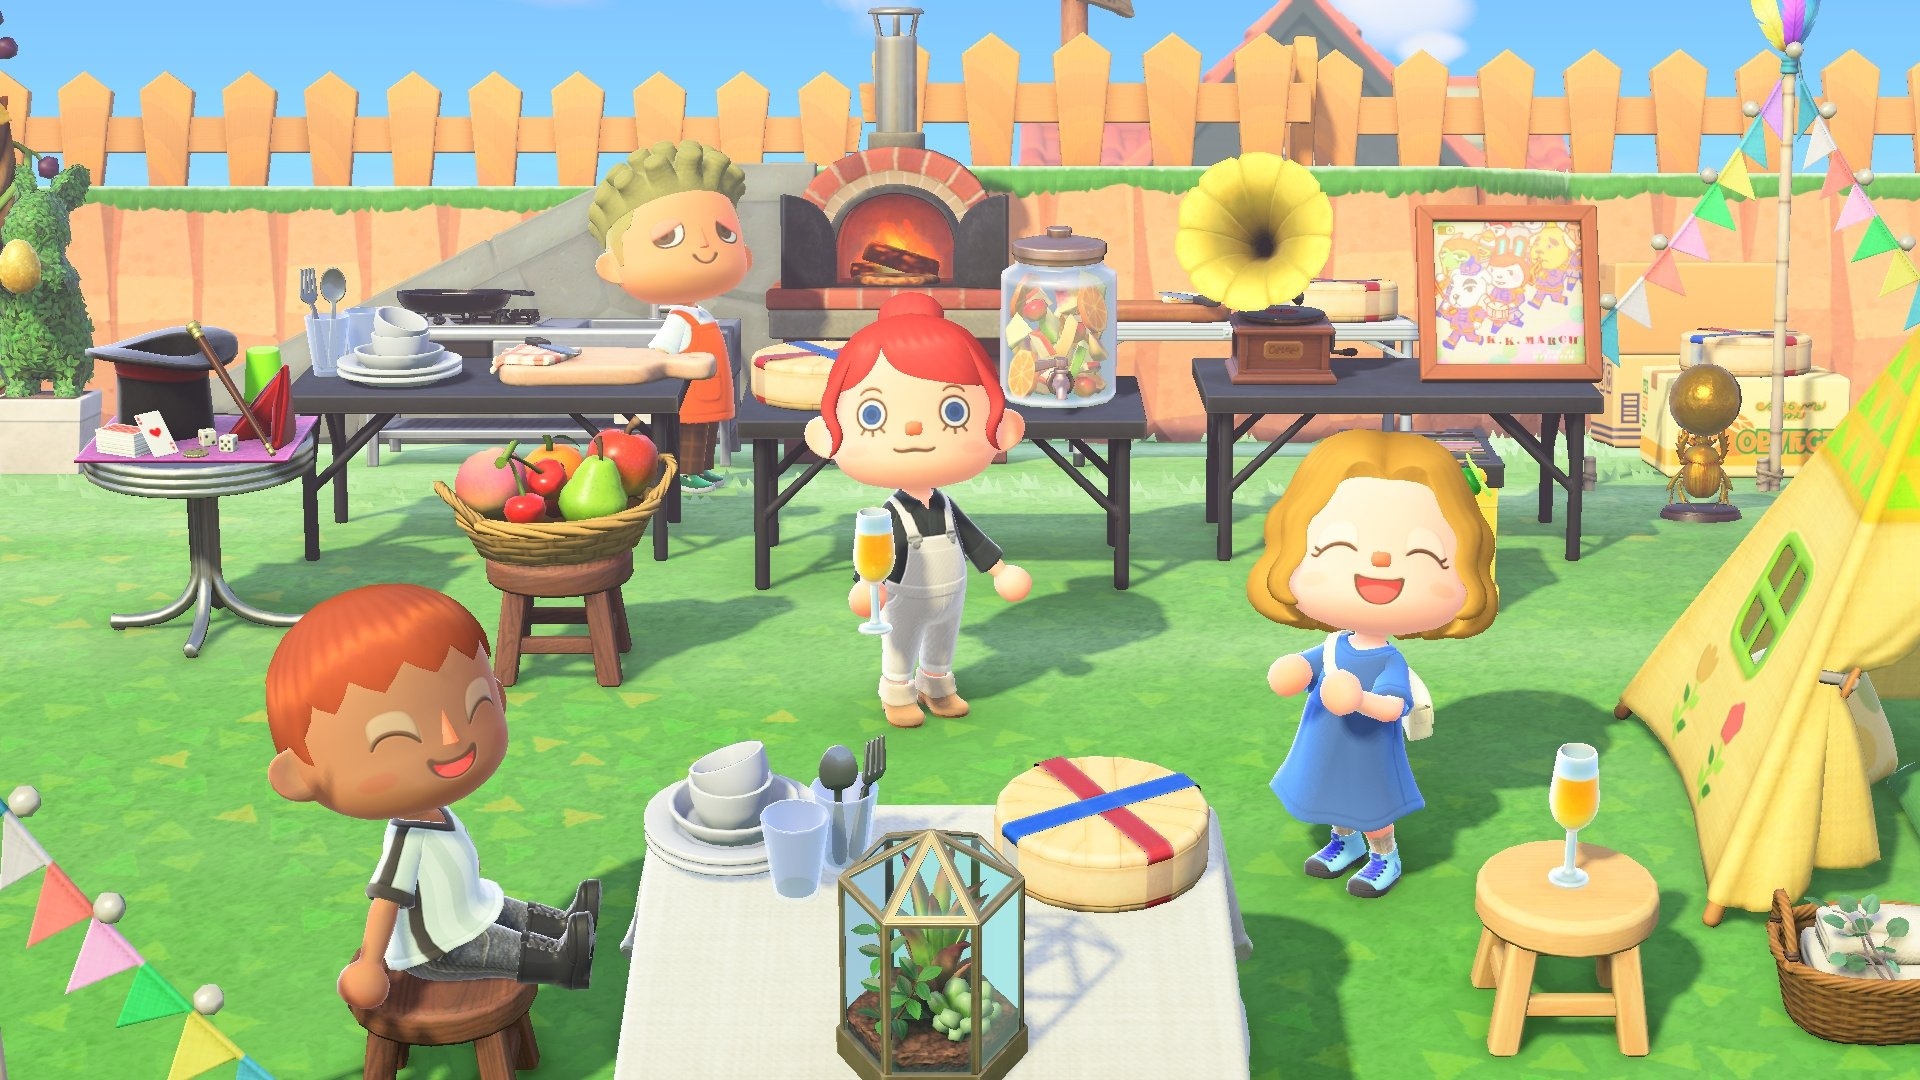 How to get a river works license to modify aquatic terrain in Animal Crossing: New Horizons